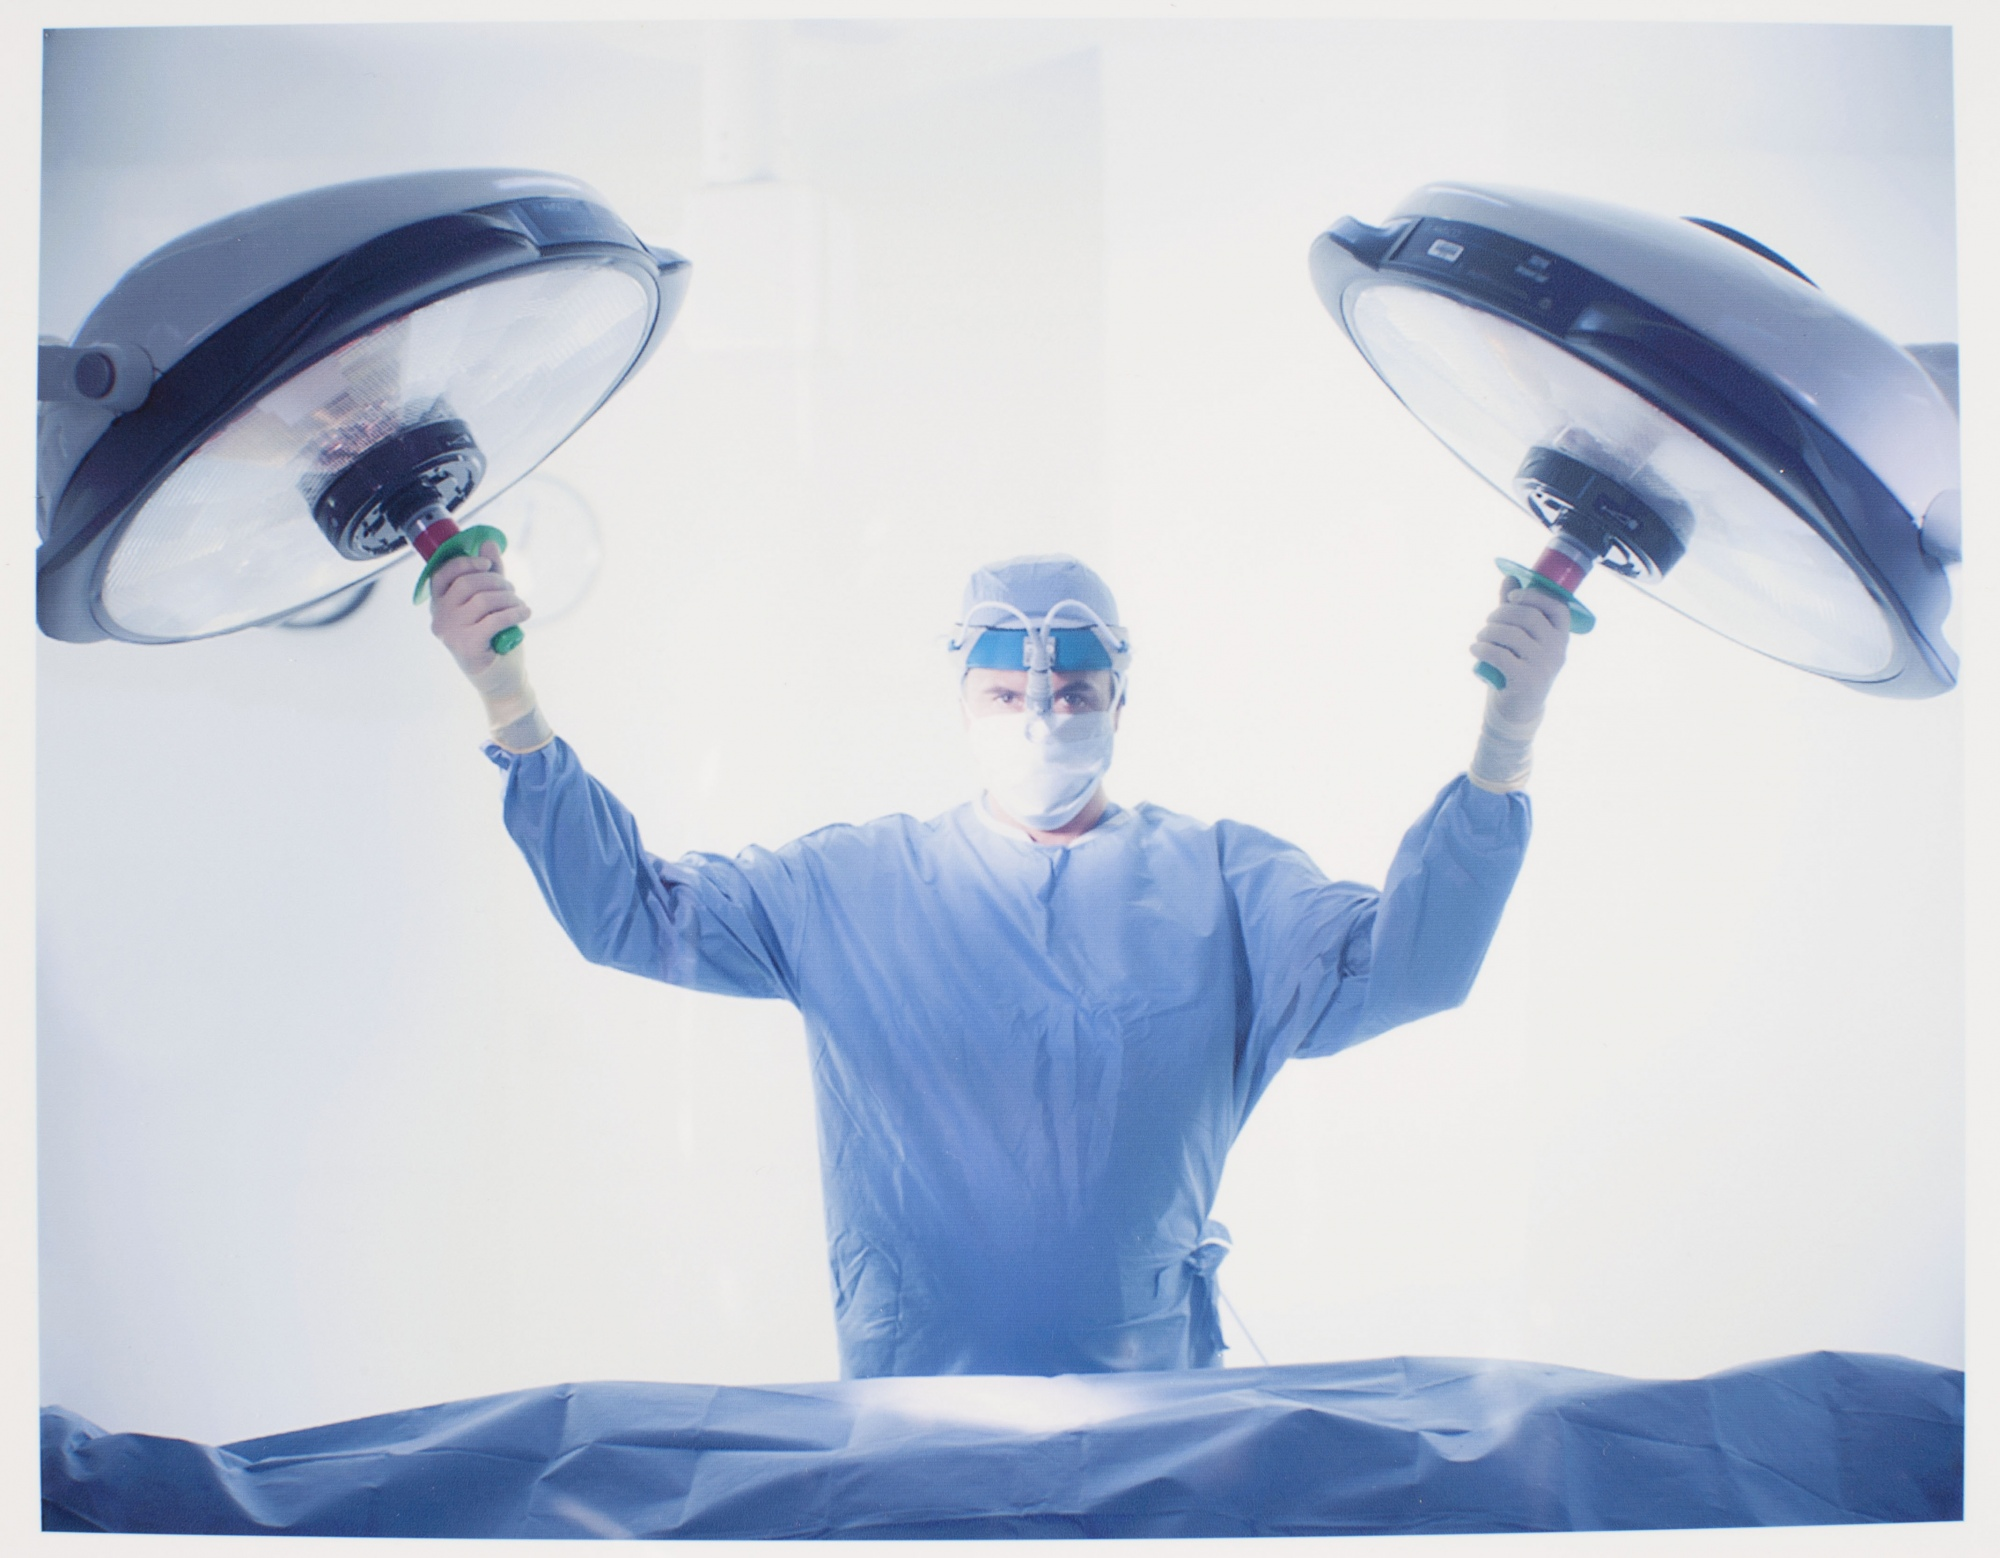 The surgeon. Advertising. Getty Images, stock photography.  Photographicworkshopslondon.com, Learning Photography, Film photography courses London